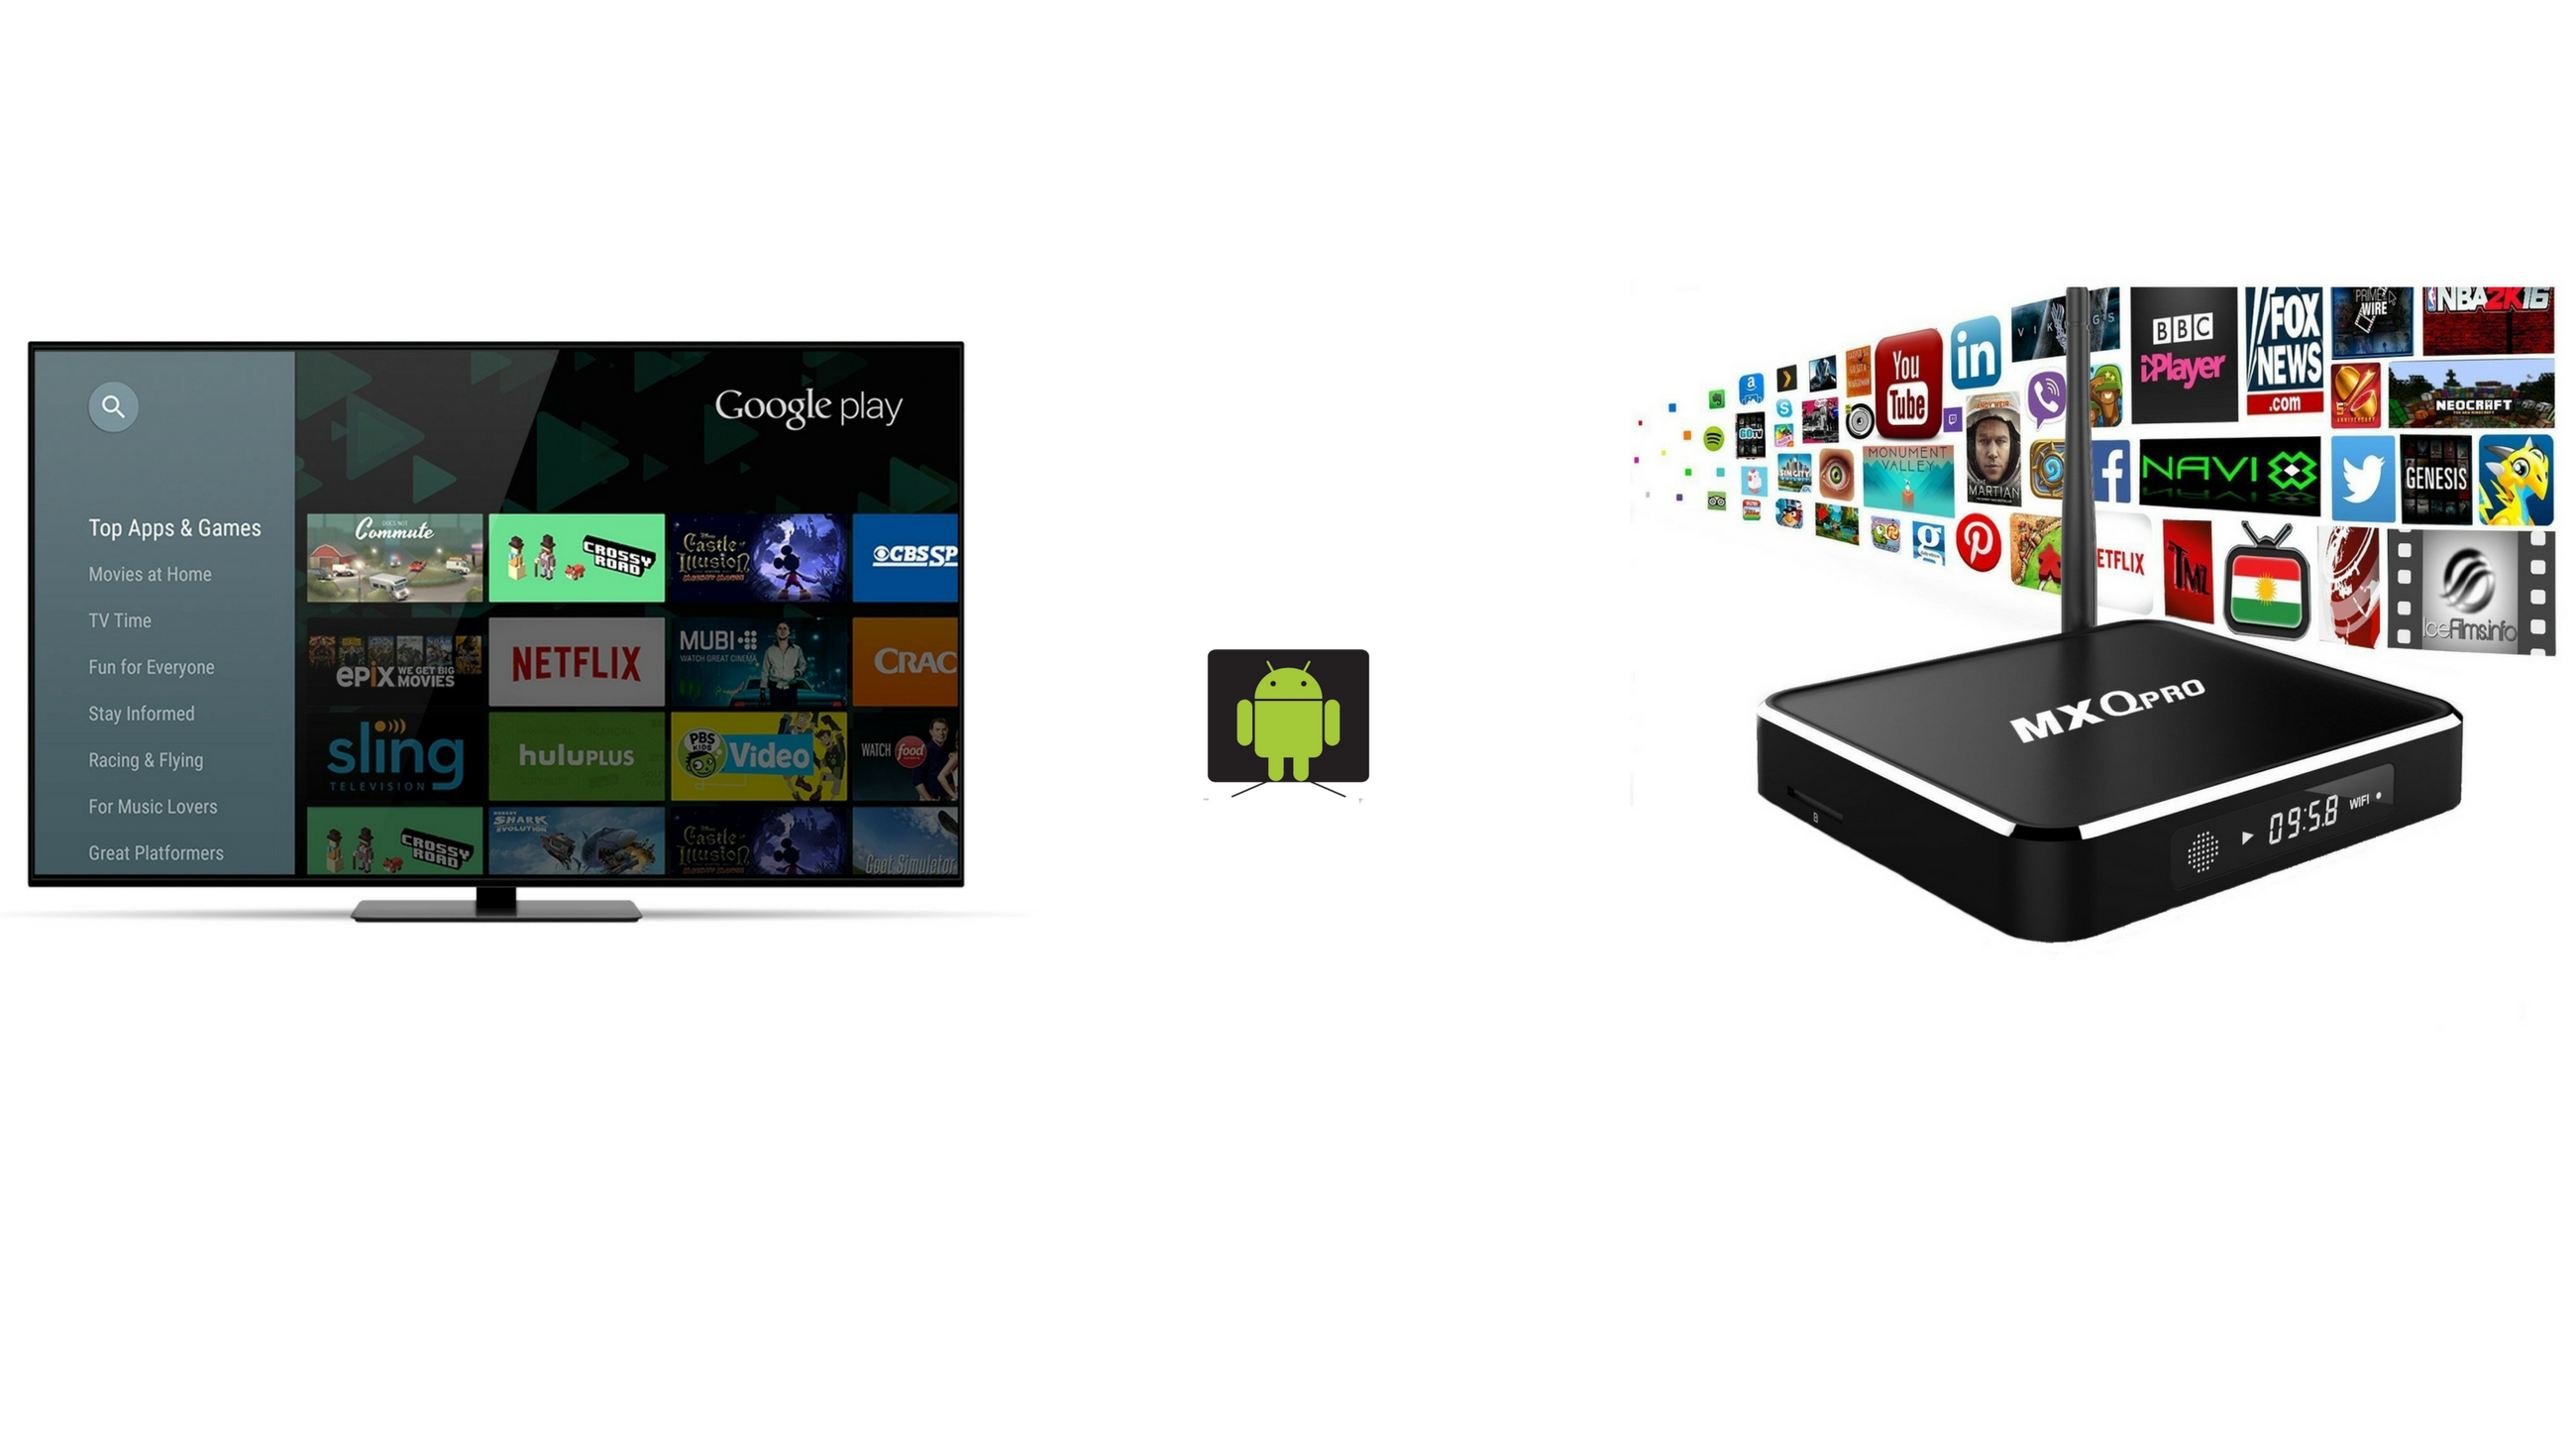 android-tv-box.fr - Le guide référence pour son android tv box